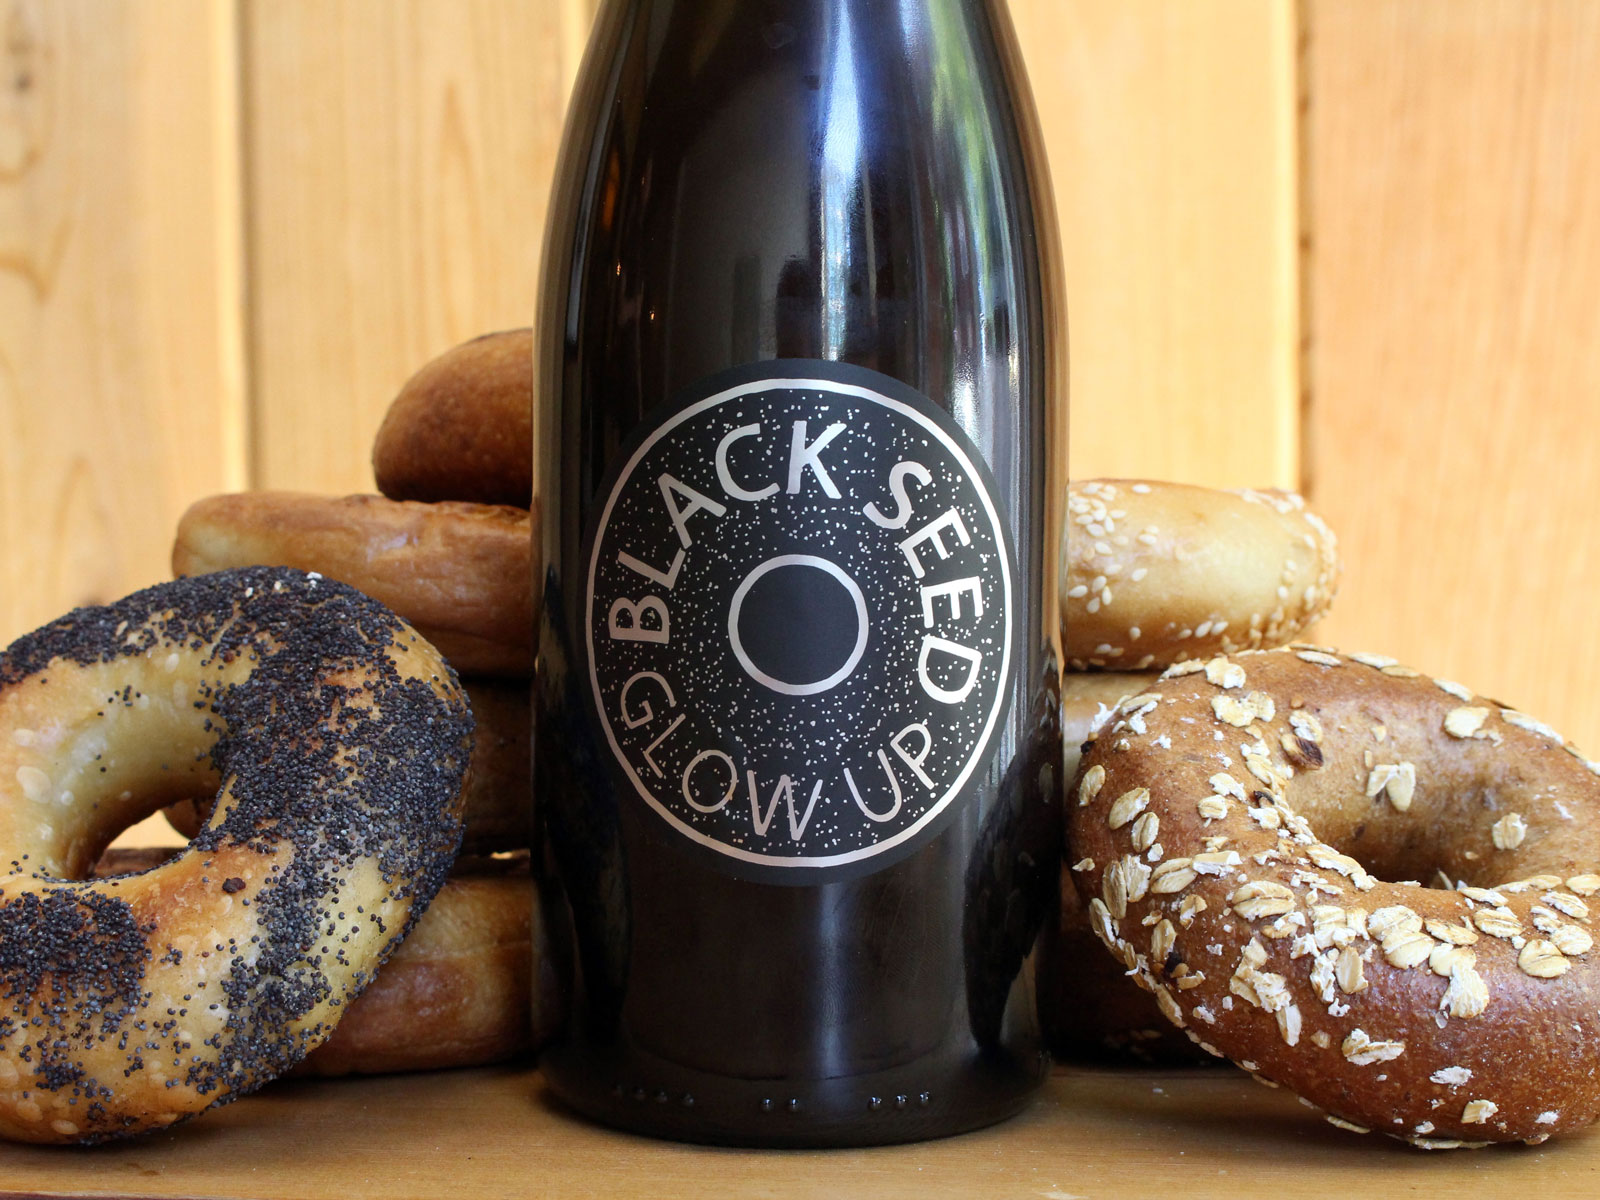 Black Seed and Folksbier Collaborate on a Beer Brewed With Bagels